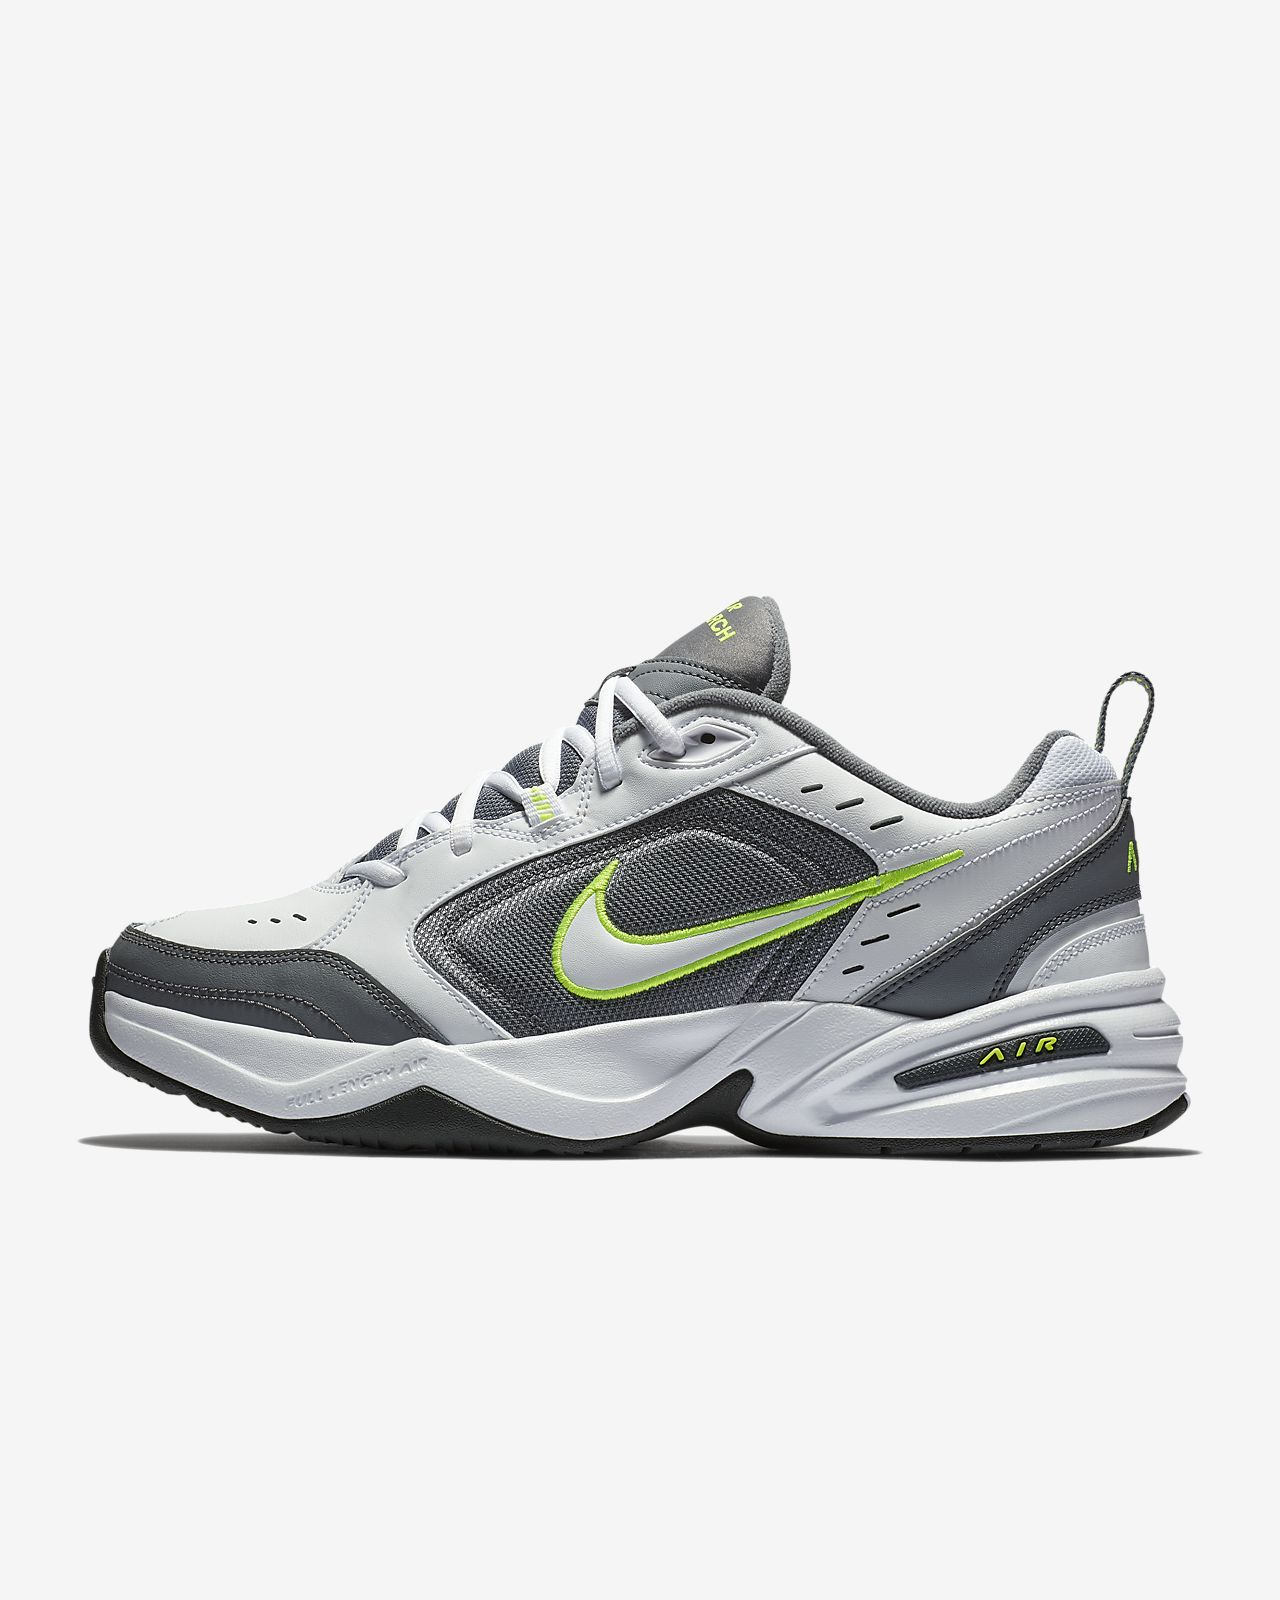 633e0b7390e2 Low Resolution Nike Air Monarch IV Lifestyle Gym Shoe Nike Air Monarch IV  Lifestyle Gym Shoe